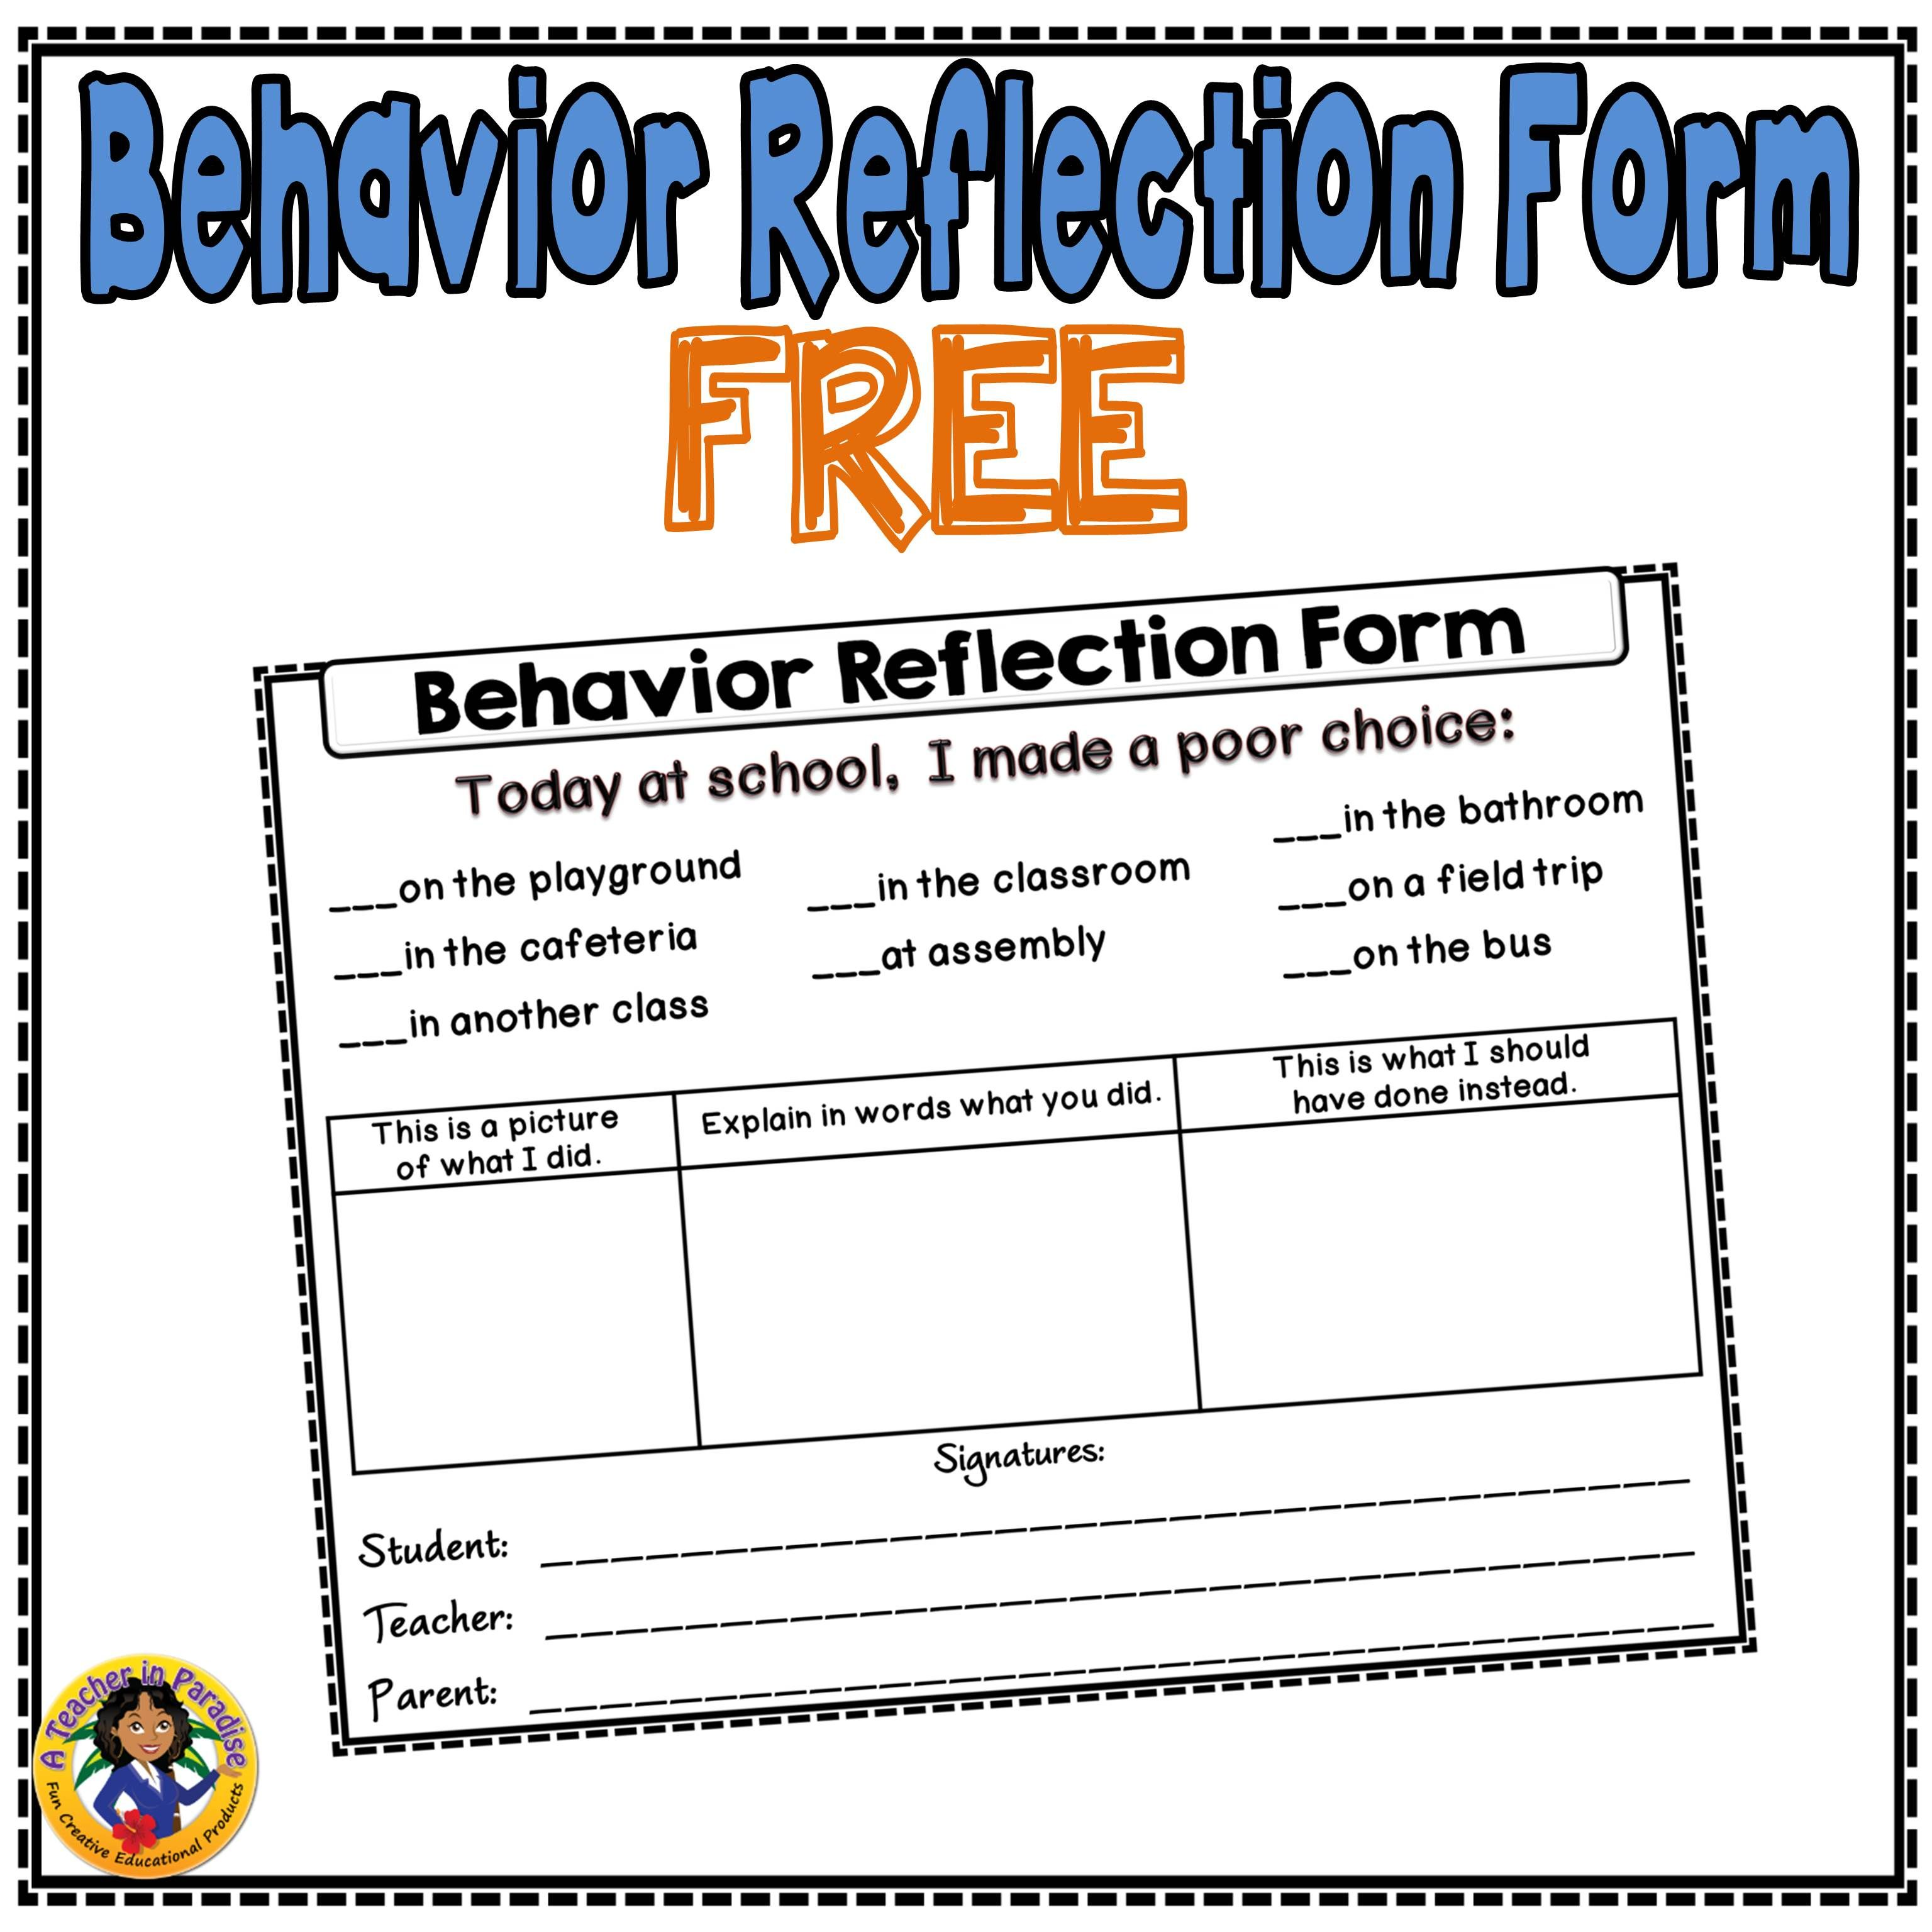 A Simple Behavior Reflection Form I Use With My Students